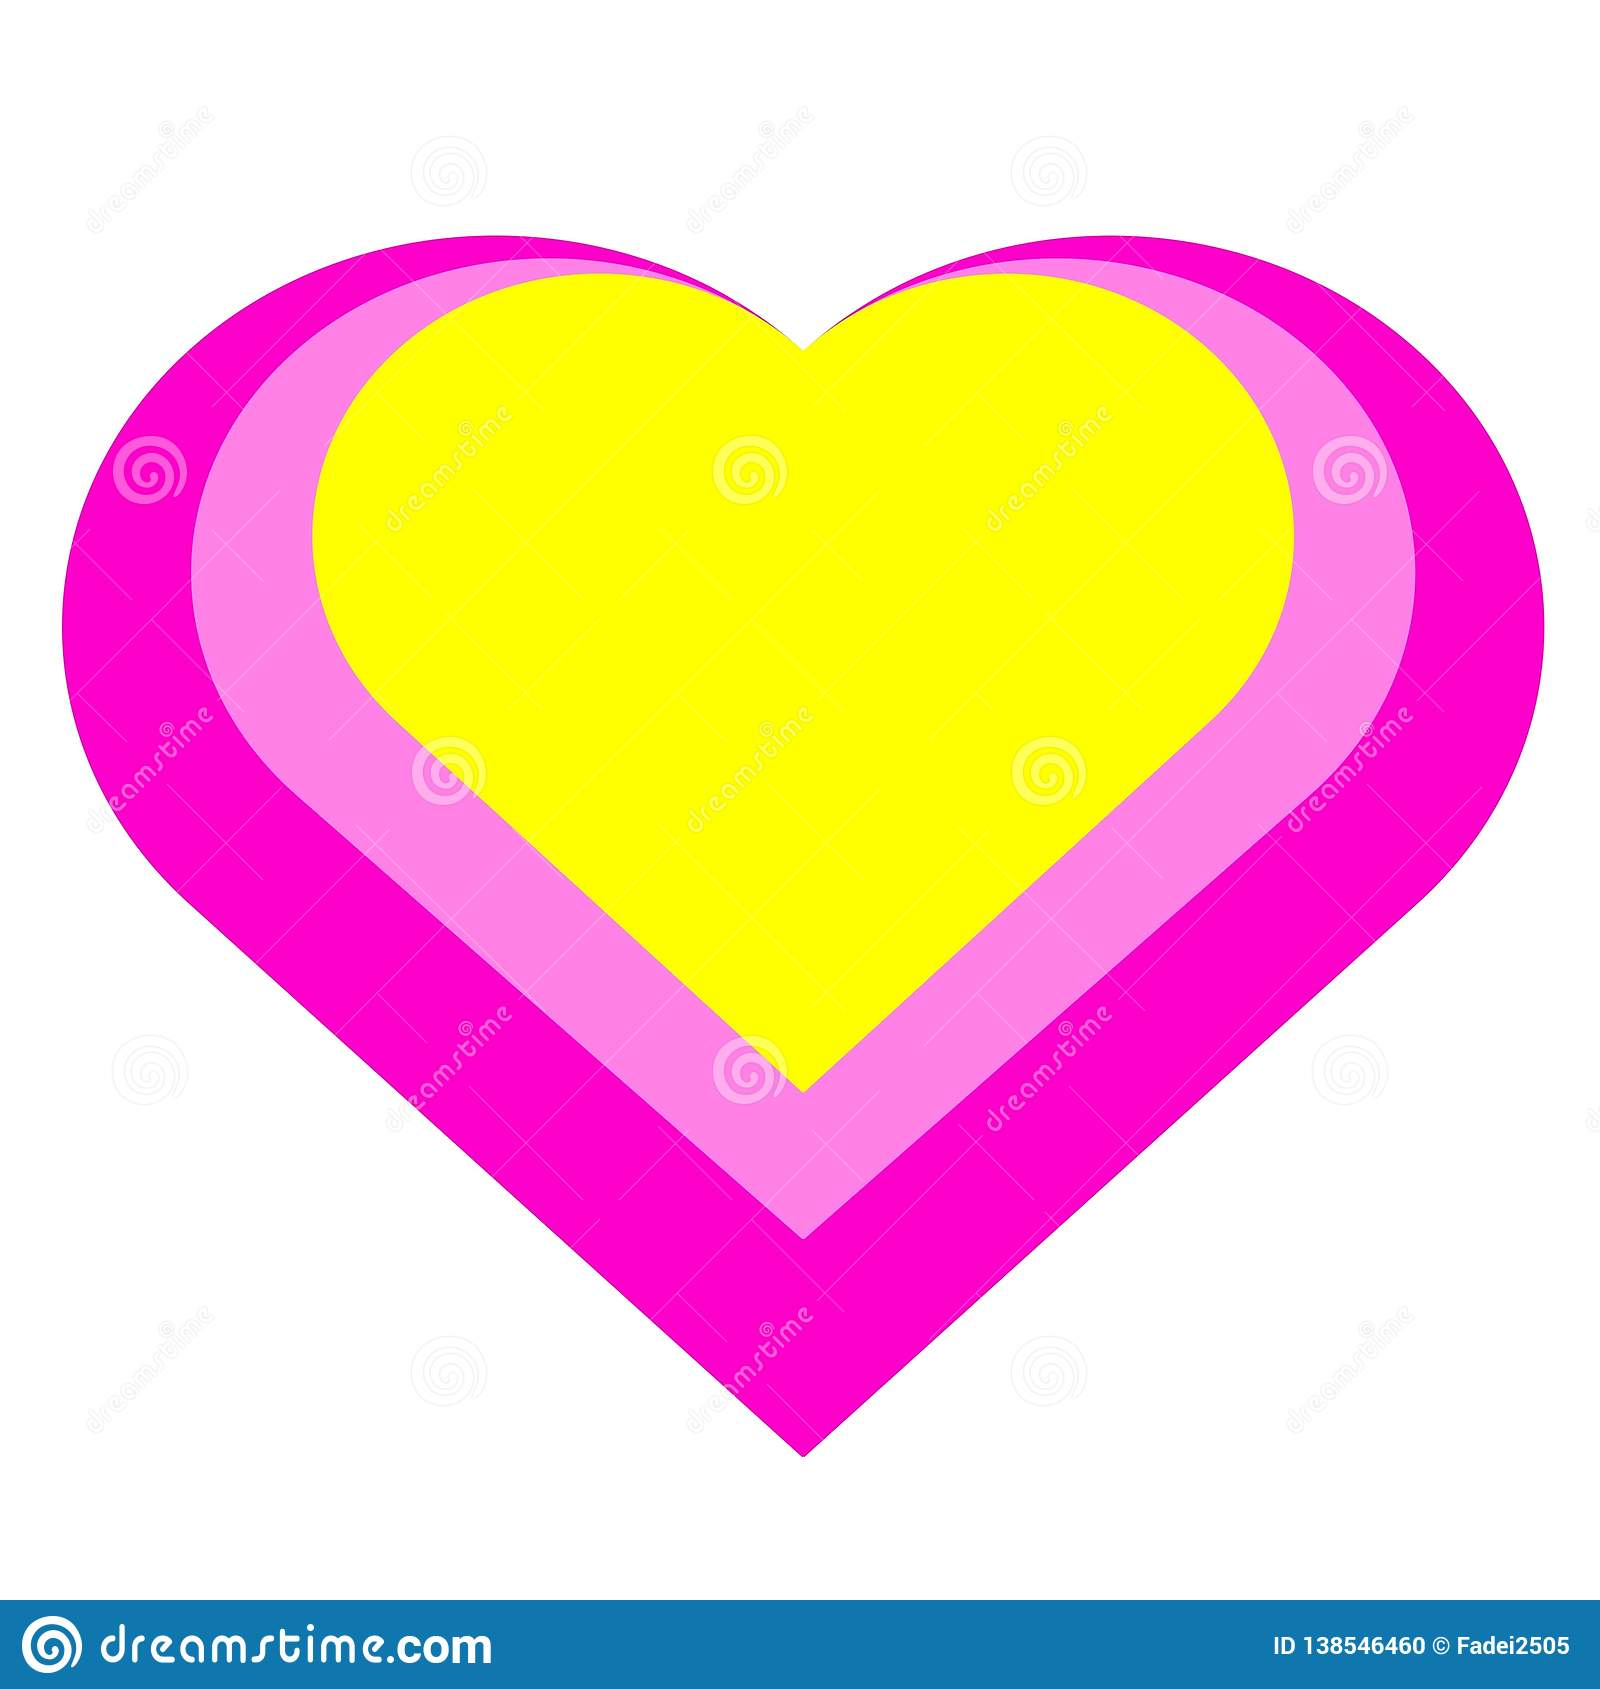 Pink heart with yellow color.